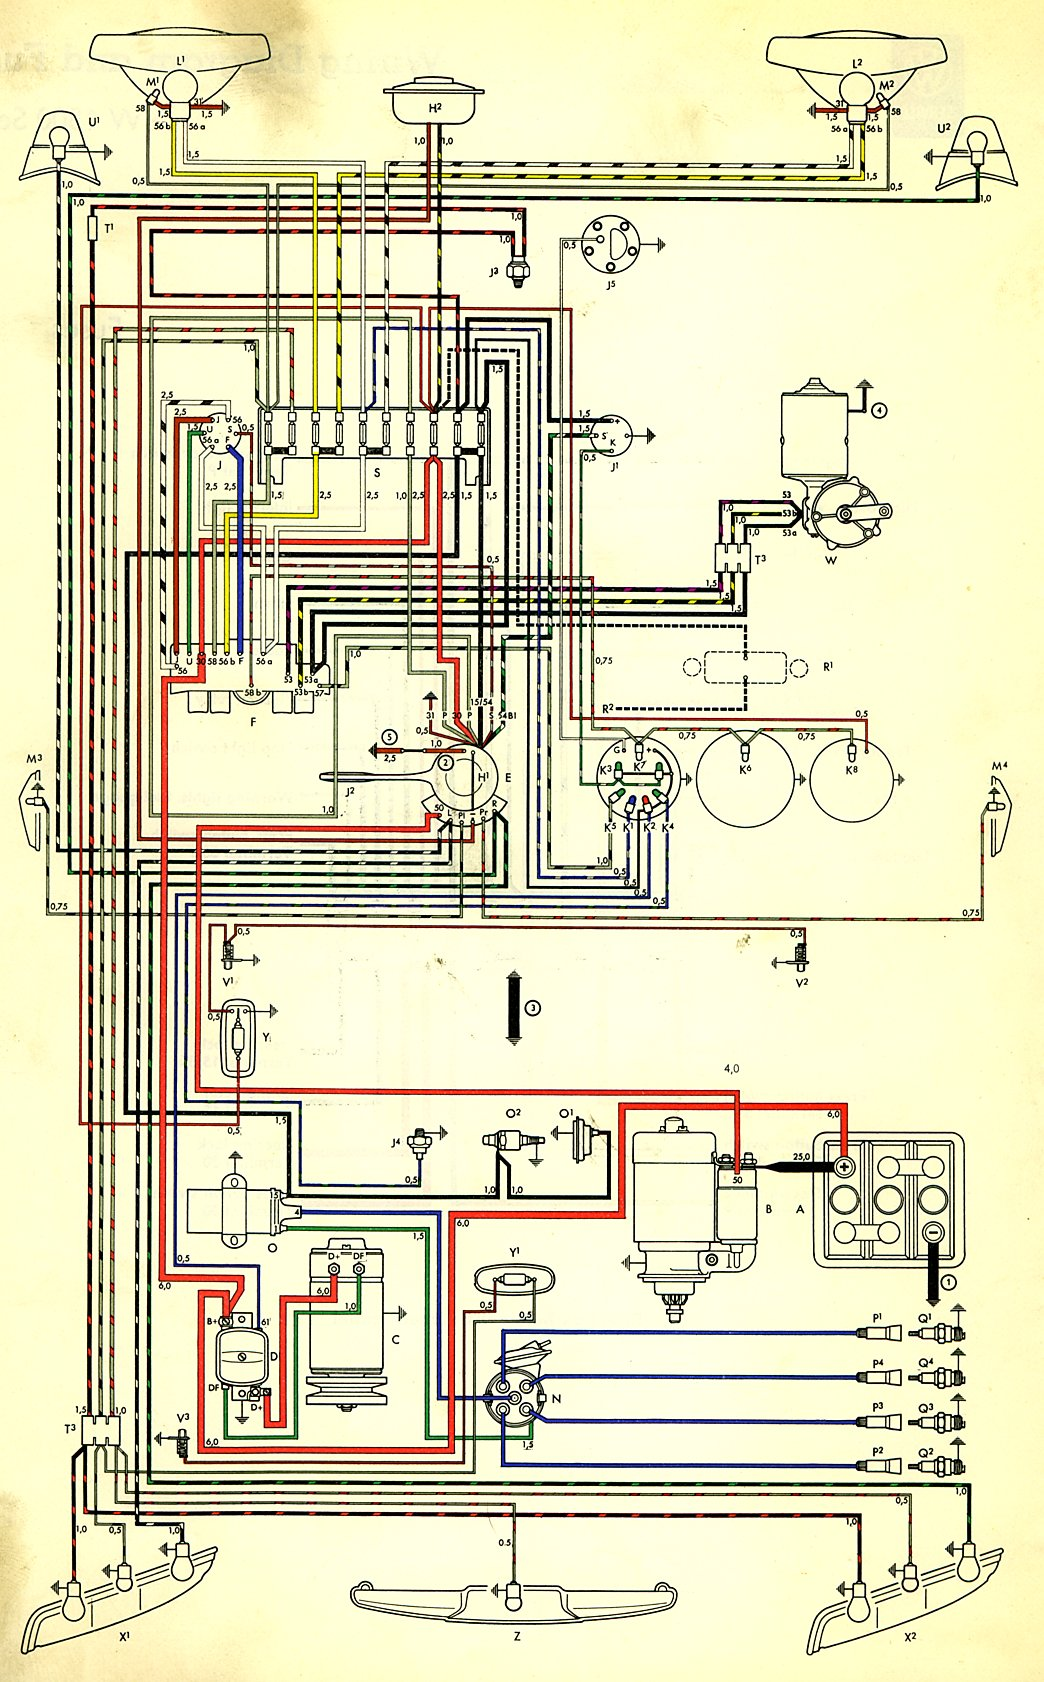 Daihatsu wiring diagram download library